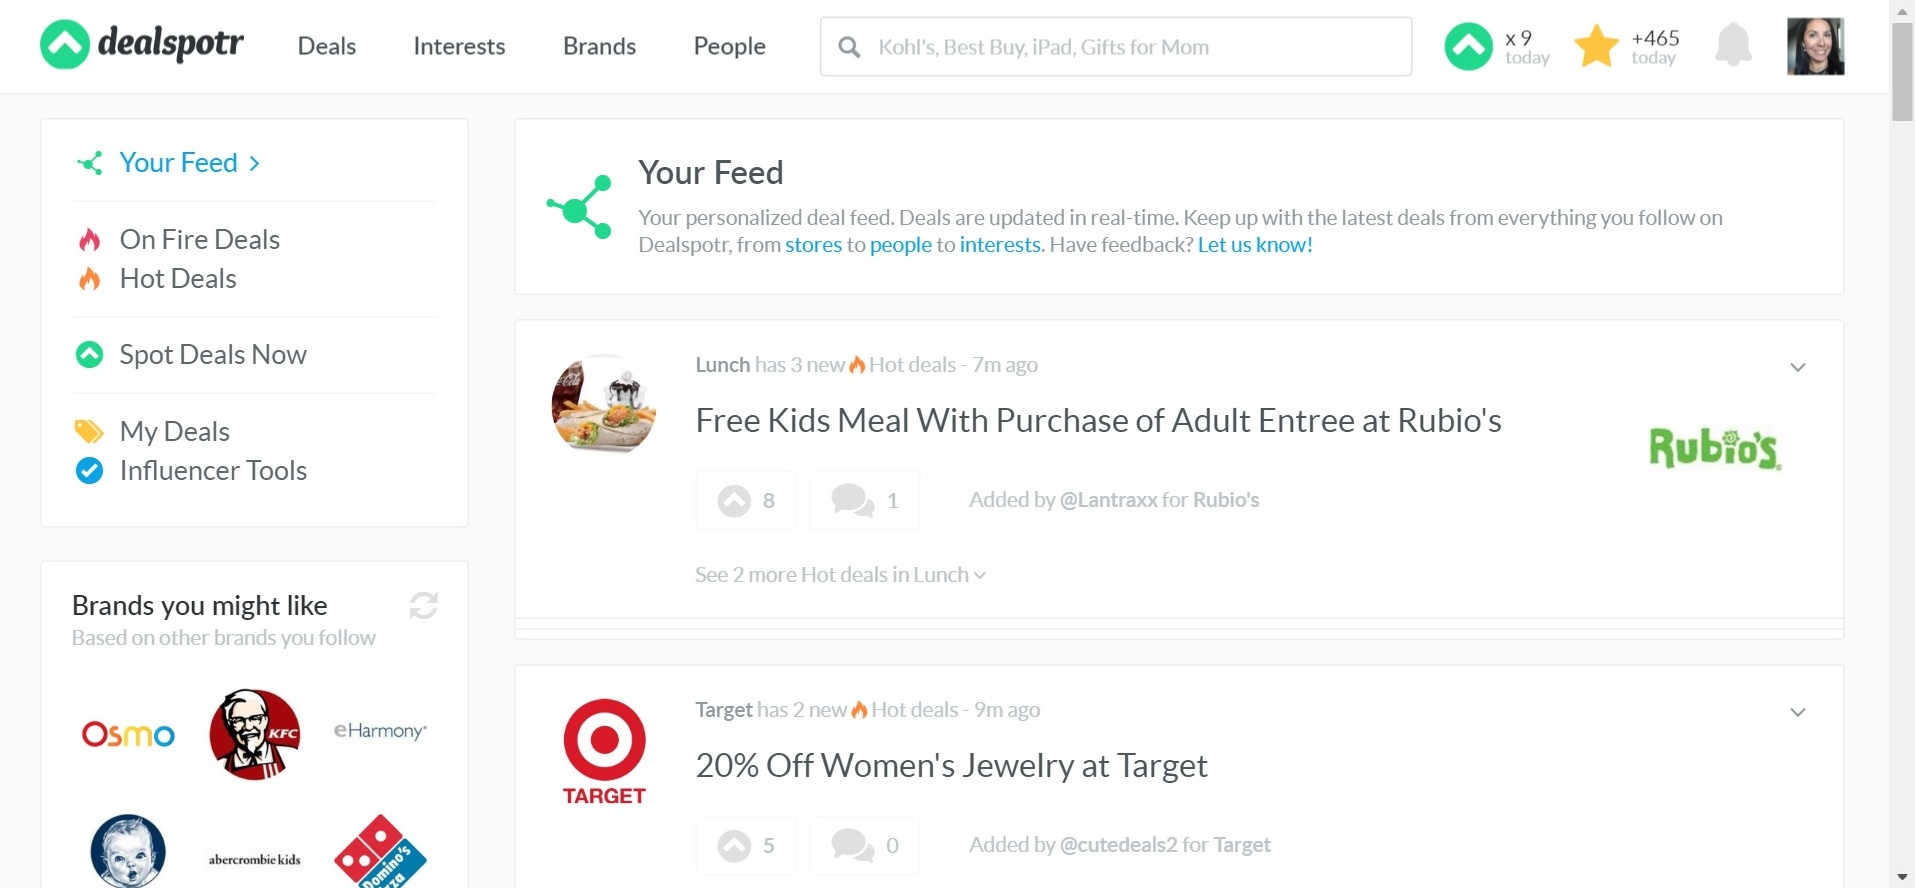 How to Find Great Online Deals and Earn Free Gift Cards